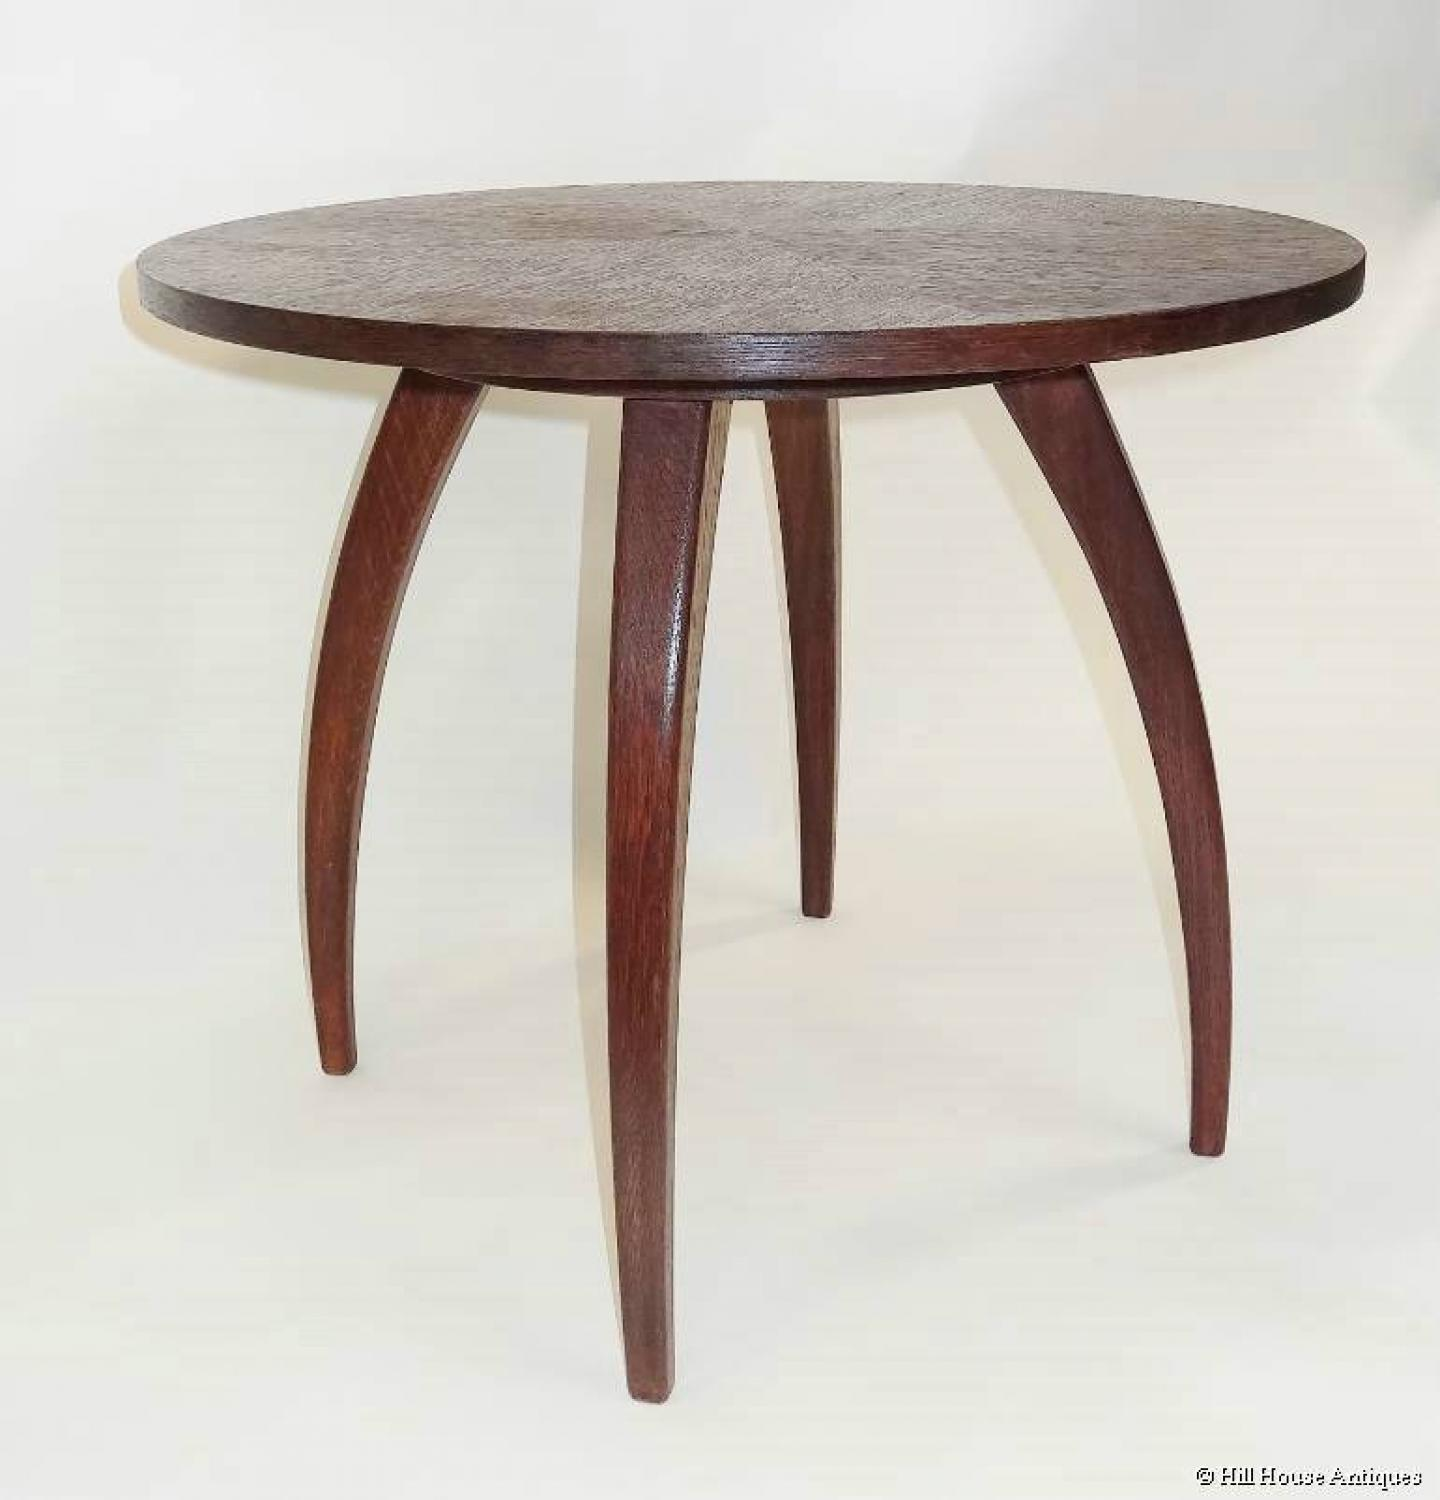 Modernist Jindrich Halabala spider table